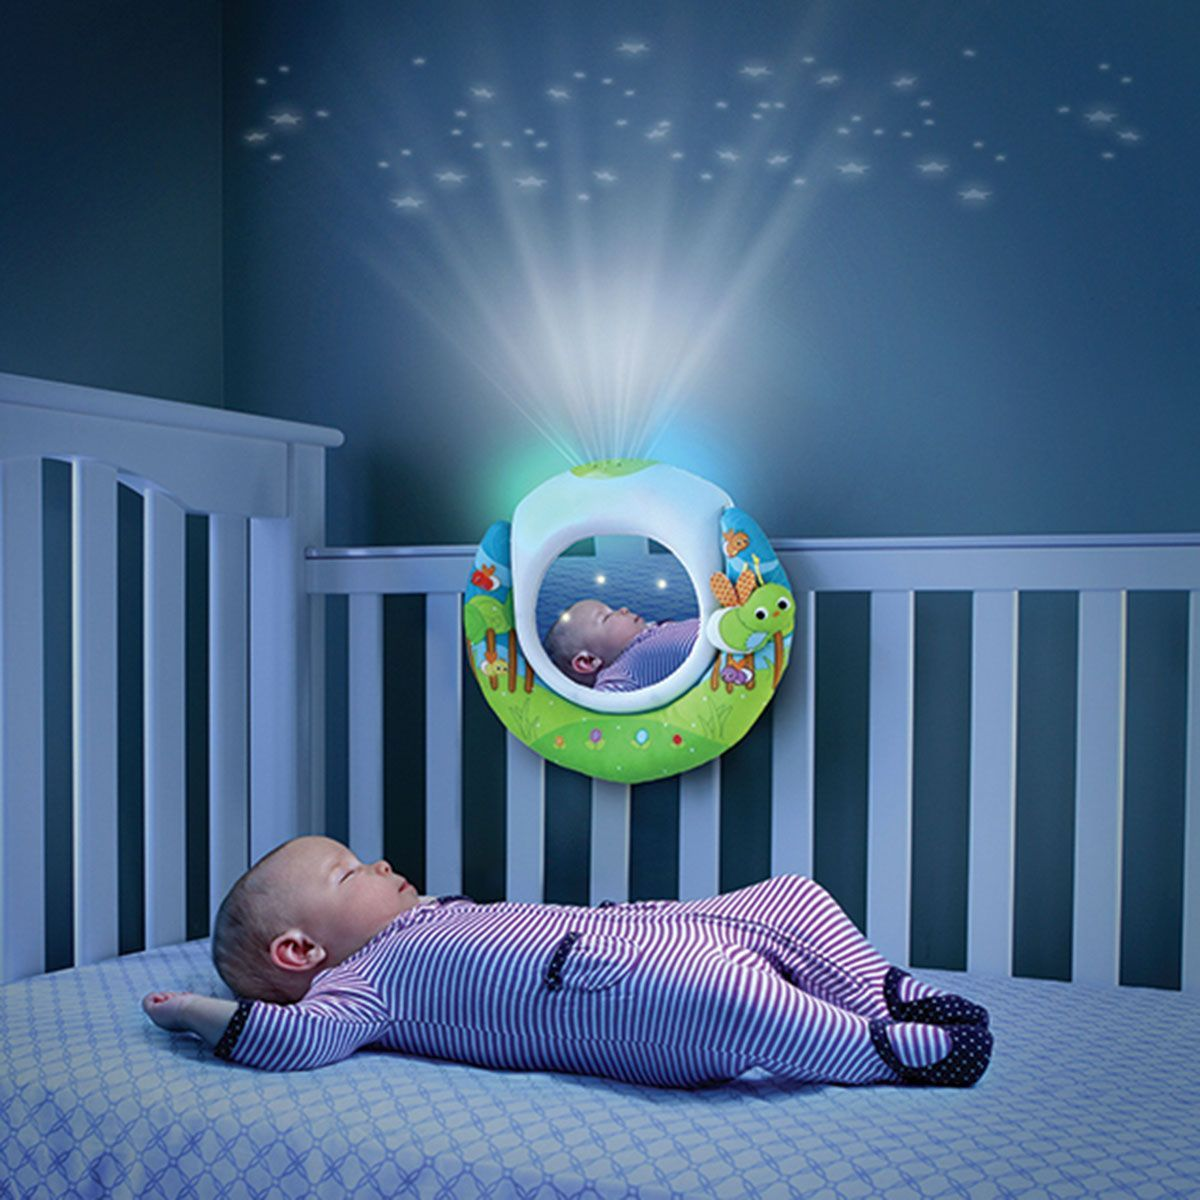 99 Baby Room Projector Light Best Spray Paint For Wood Furniture Check More At